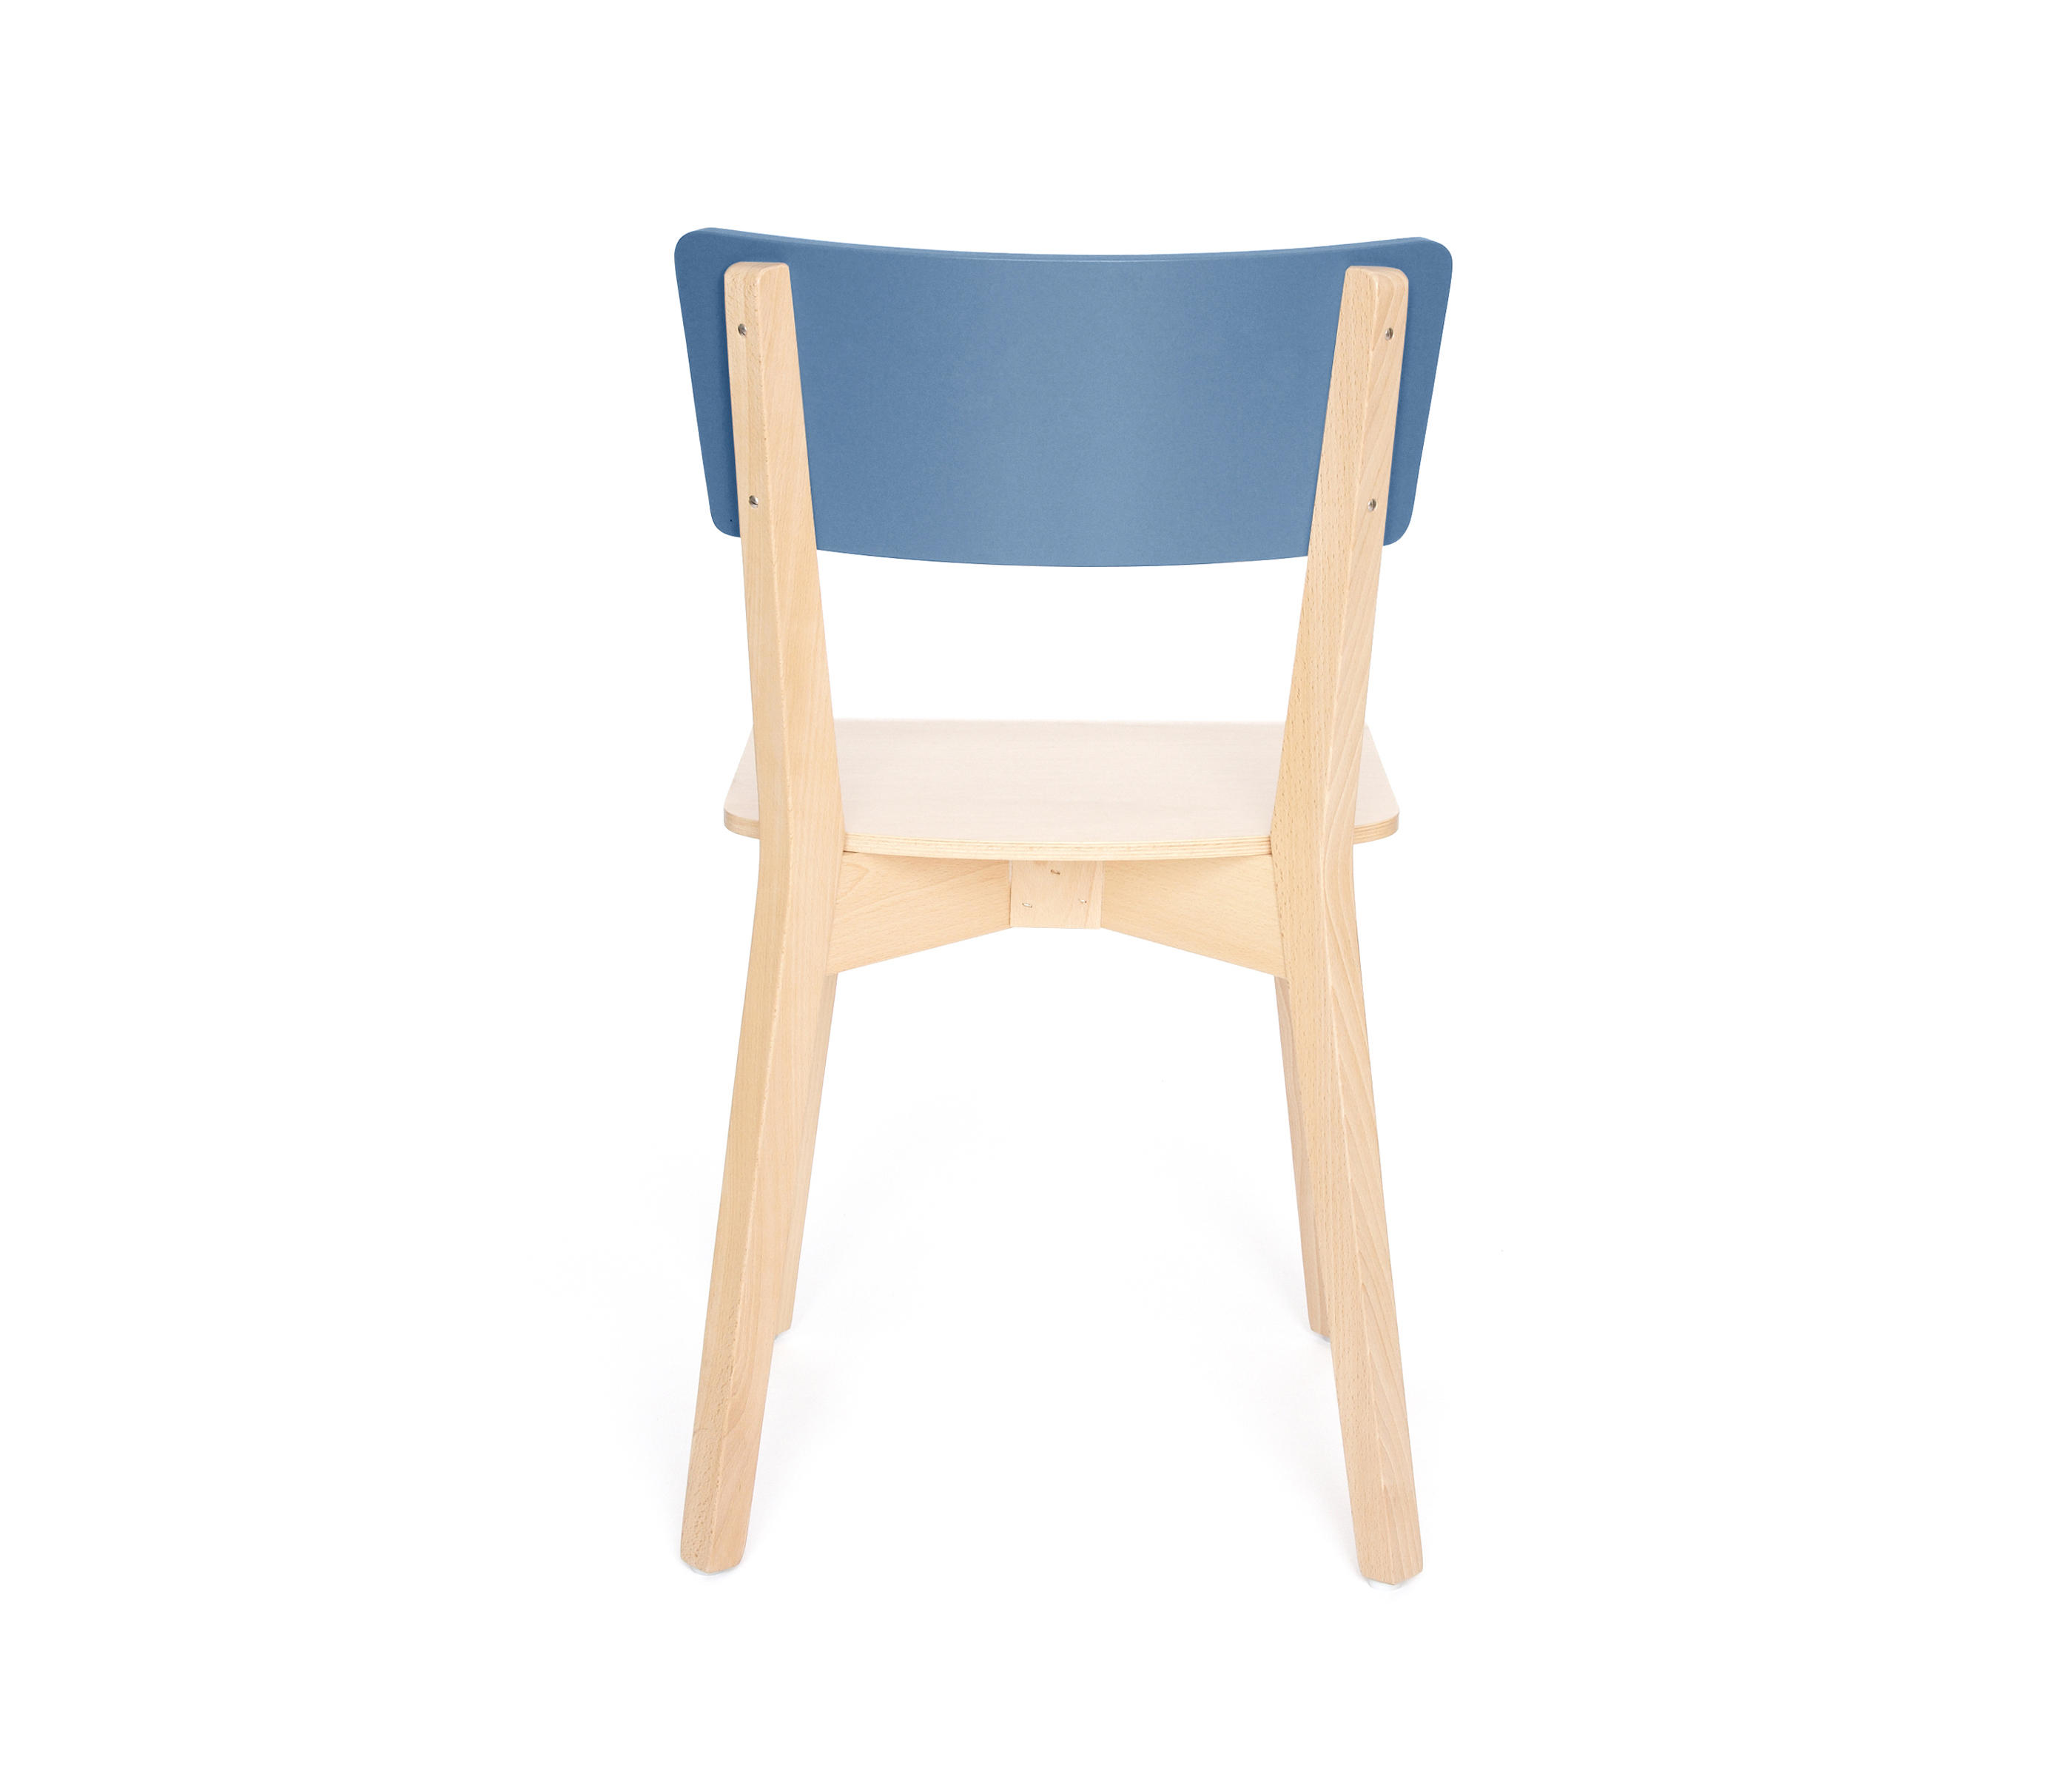 Ingrid chaises de restaurant de z editions architonic - Fabricant chaises belgique ...